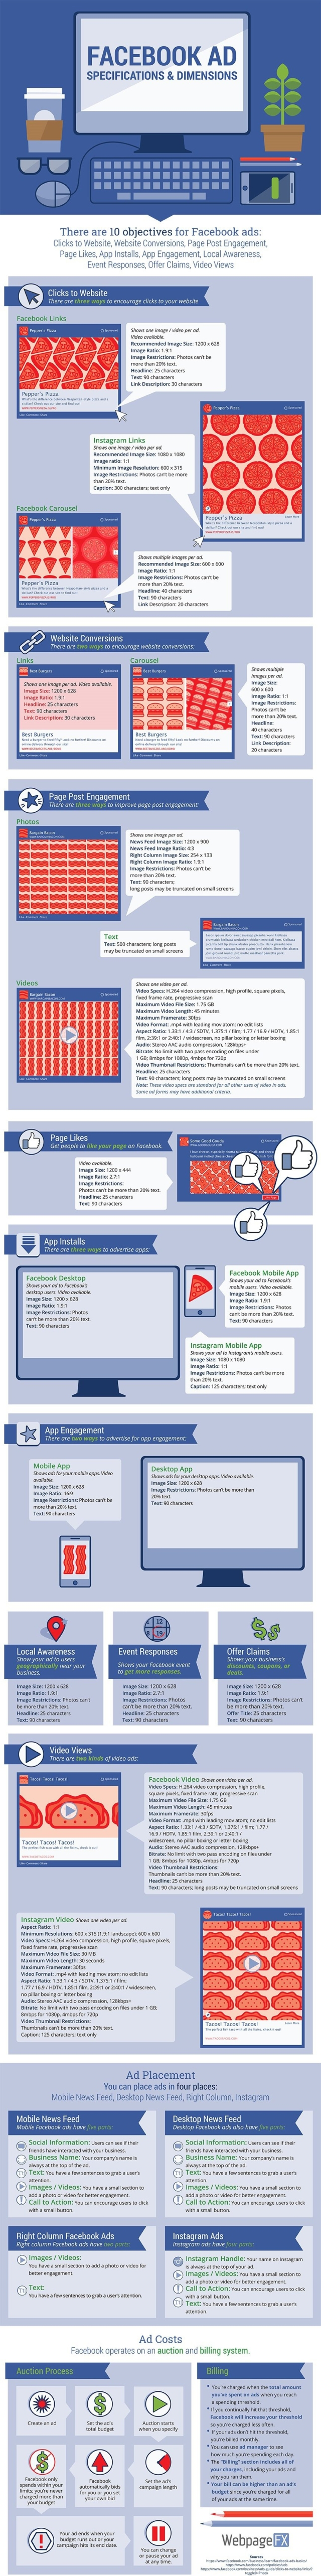 Facebook Ads A Beginners Guide to Advertising on Facebook